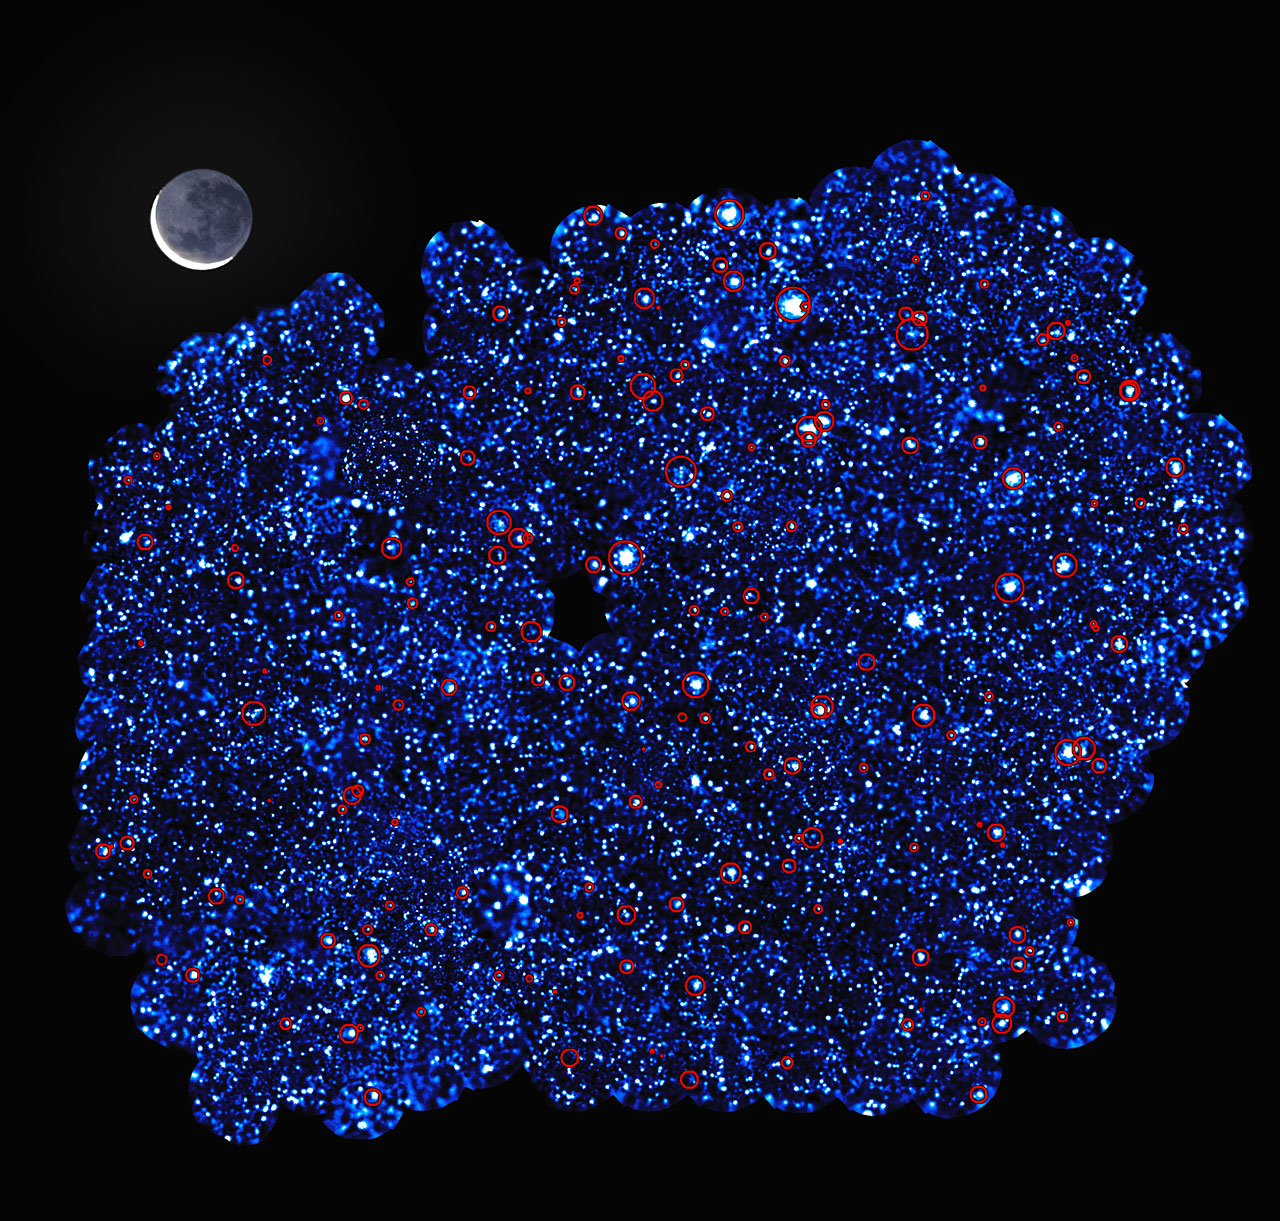 X-ray image of the XXL-South Field - Image Credit: ESO